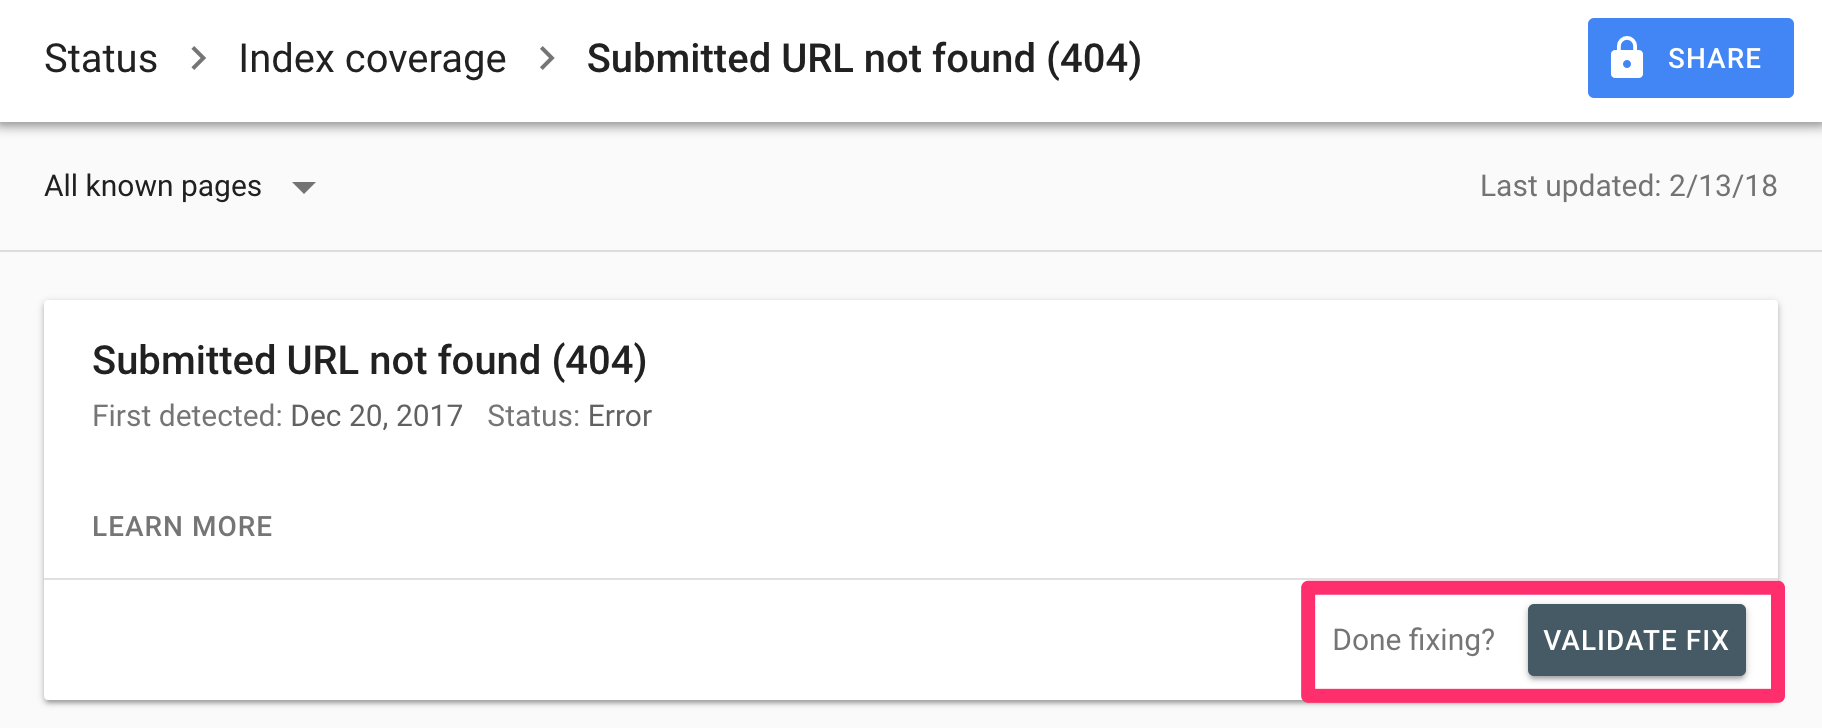 Submitted URL not found (404)